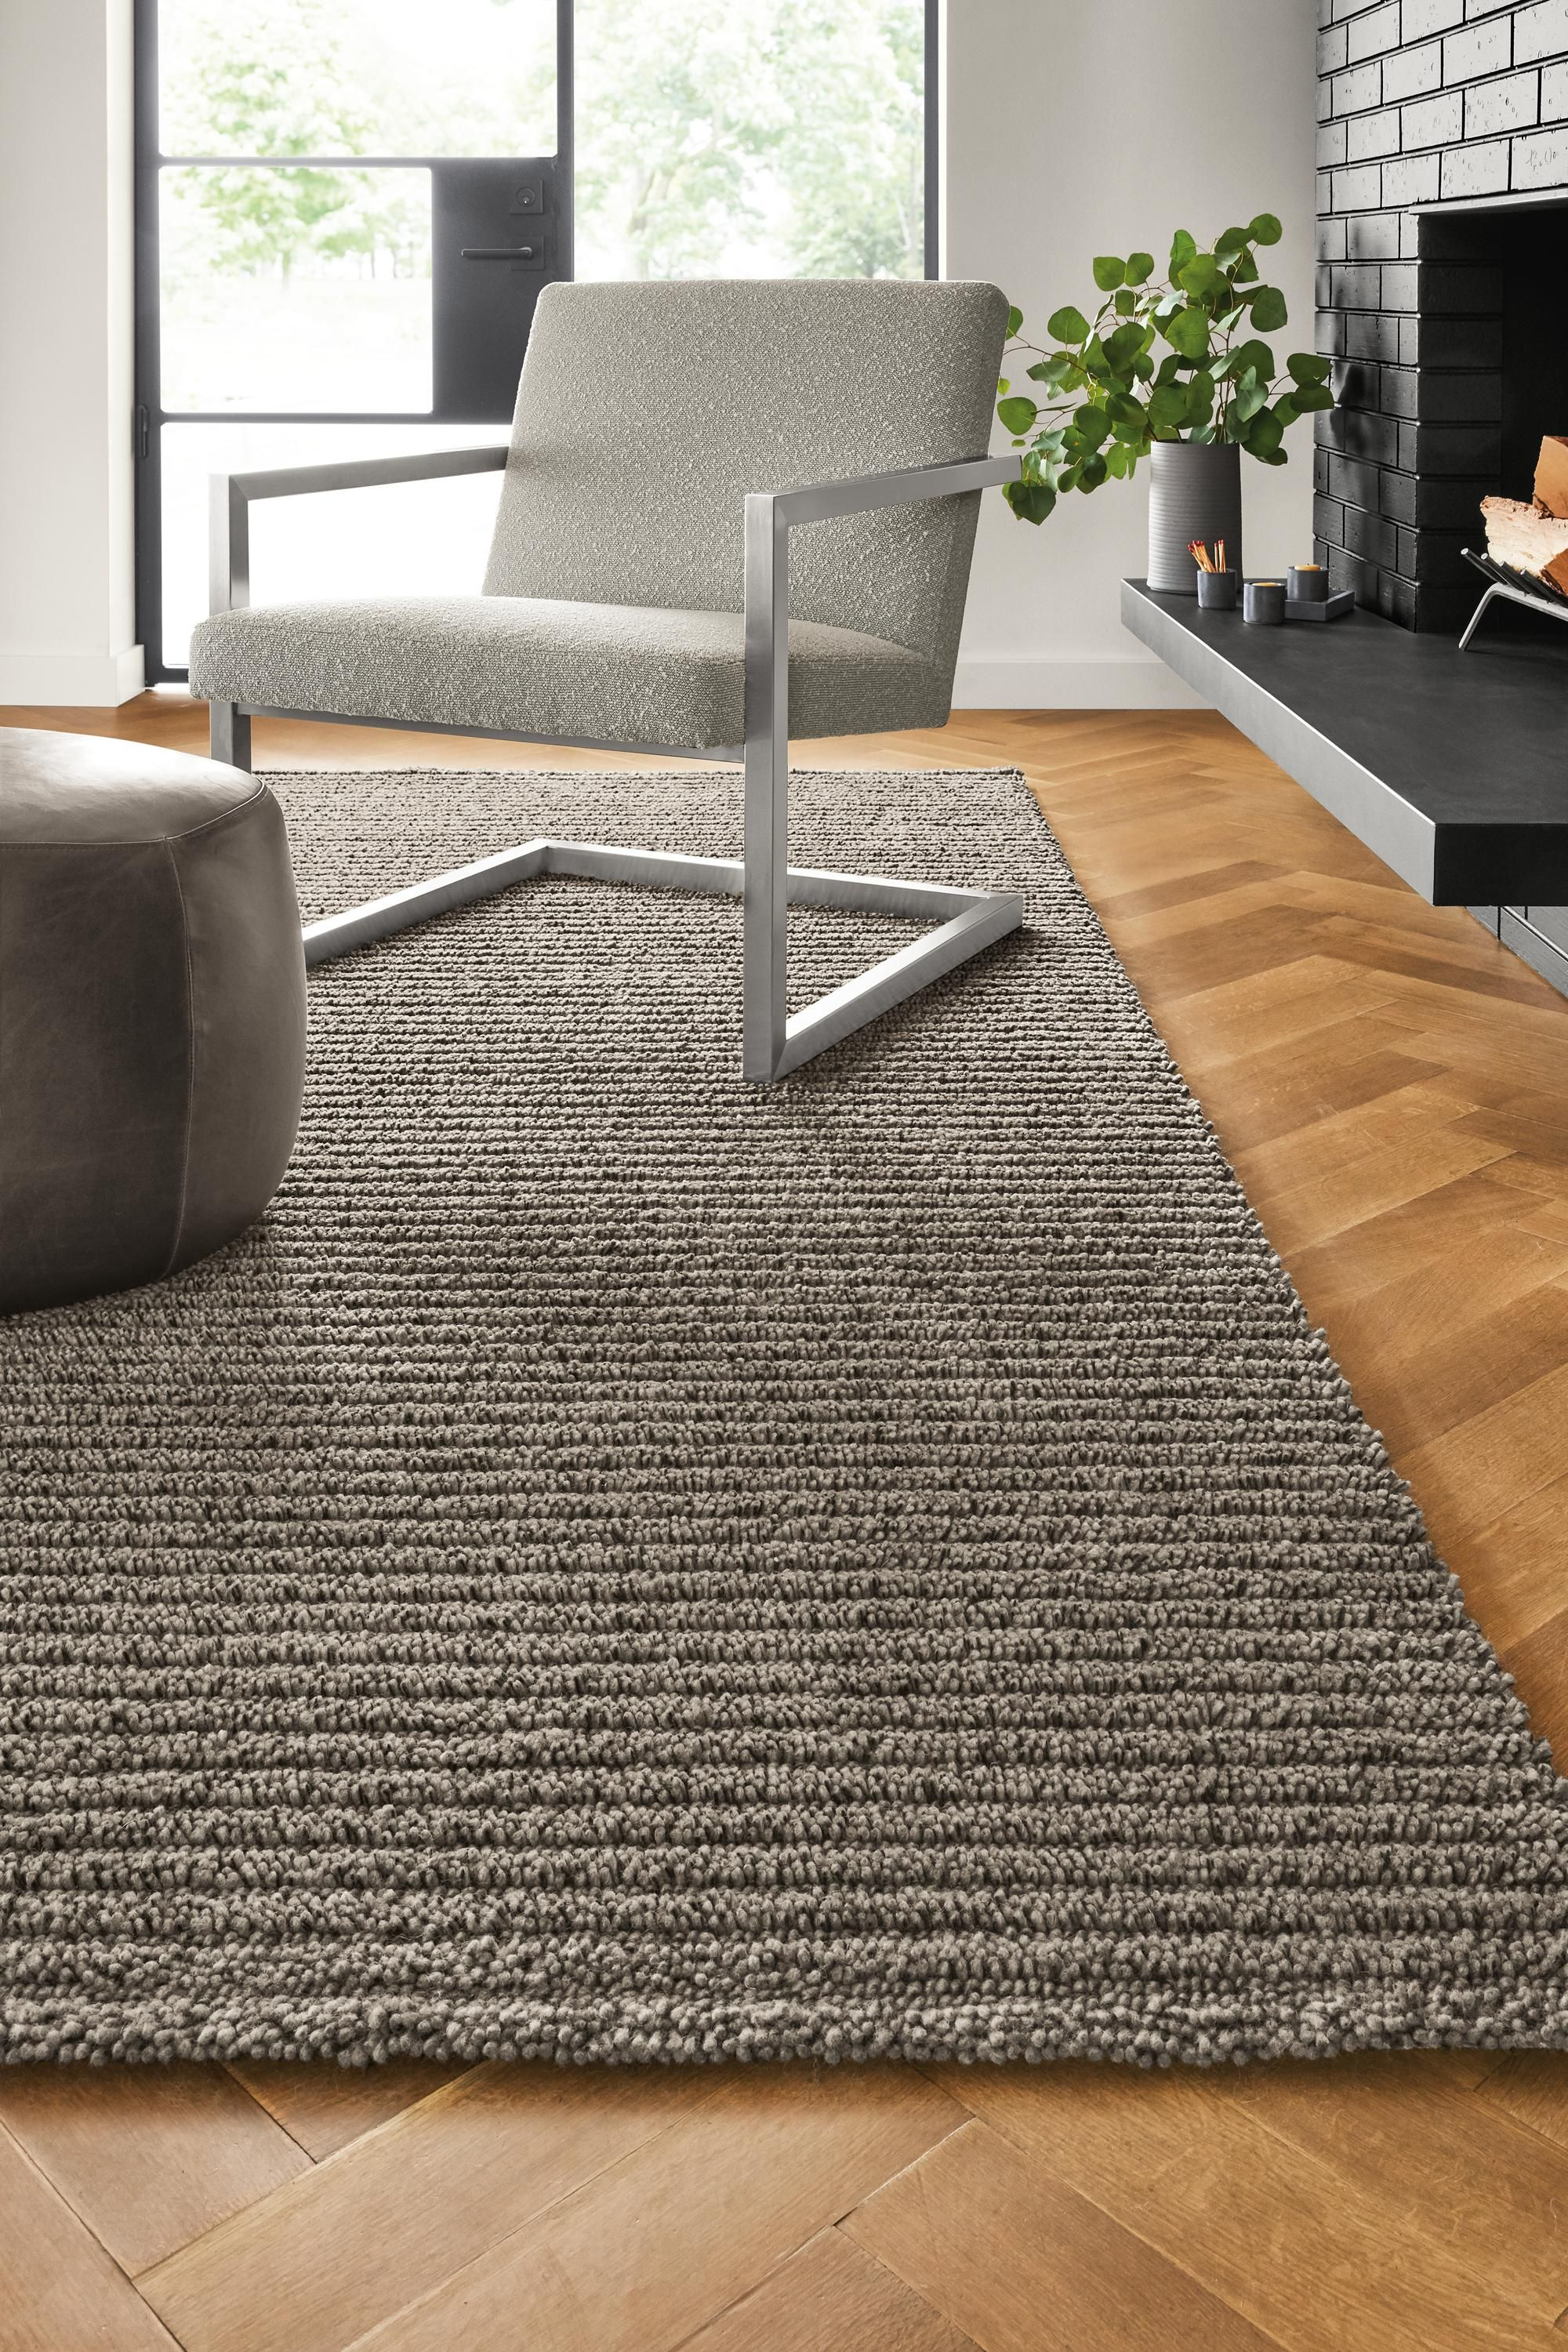 Arden Ribbed Rugs Modern Solid Rugs Modern Rugs Room Board In 2020 Solid Rugs Modern Rugs Rugs